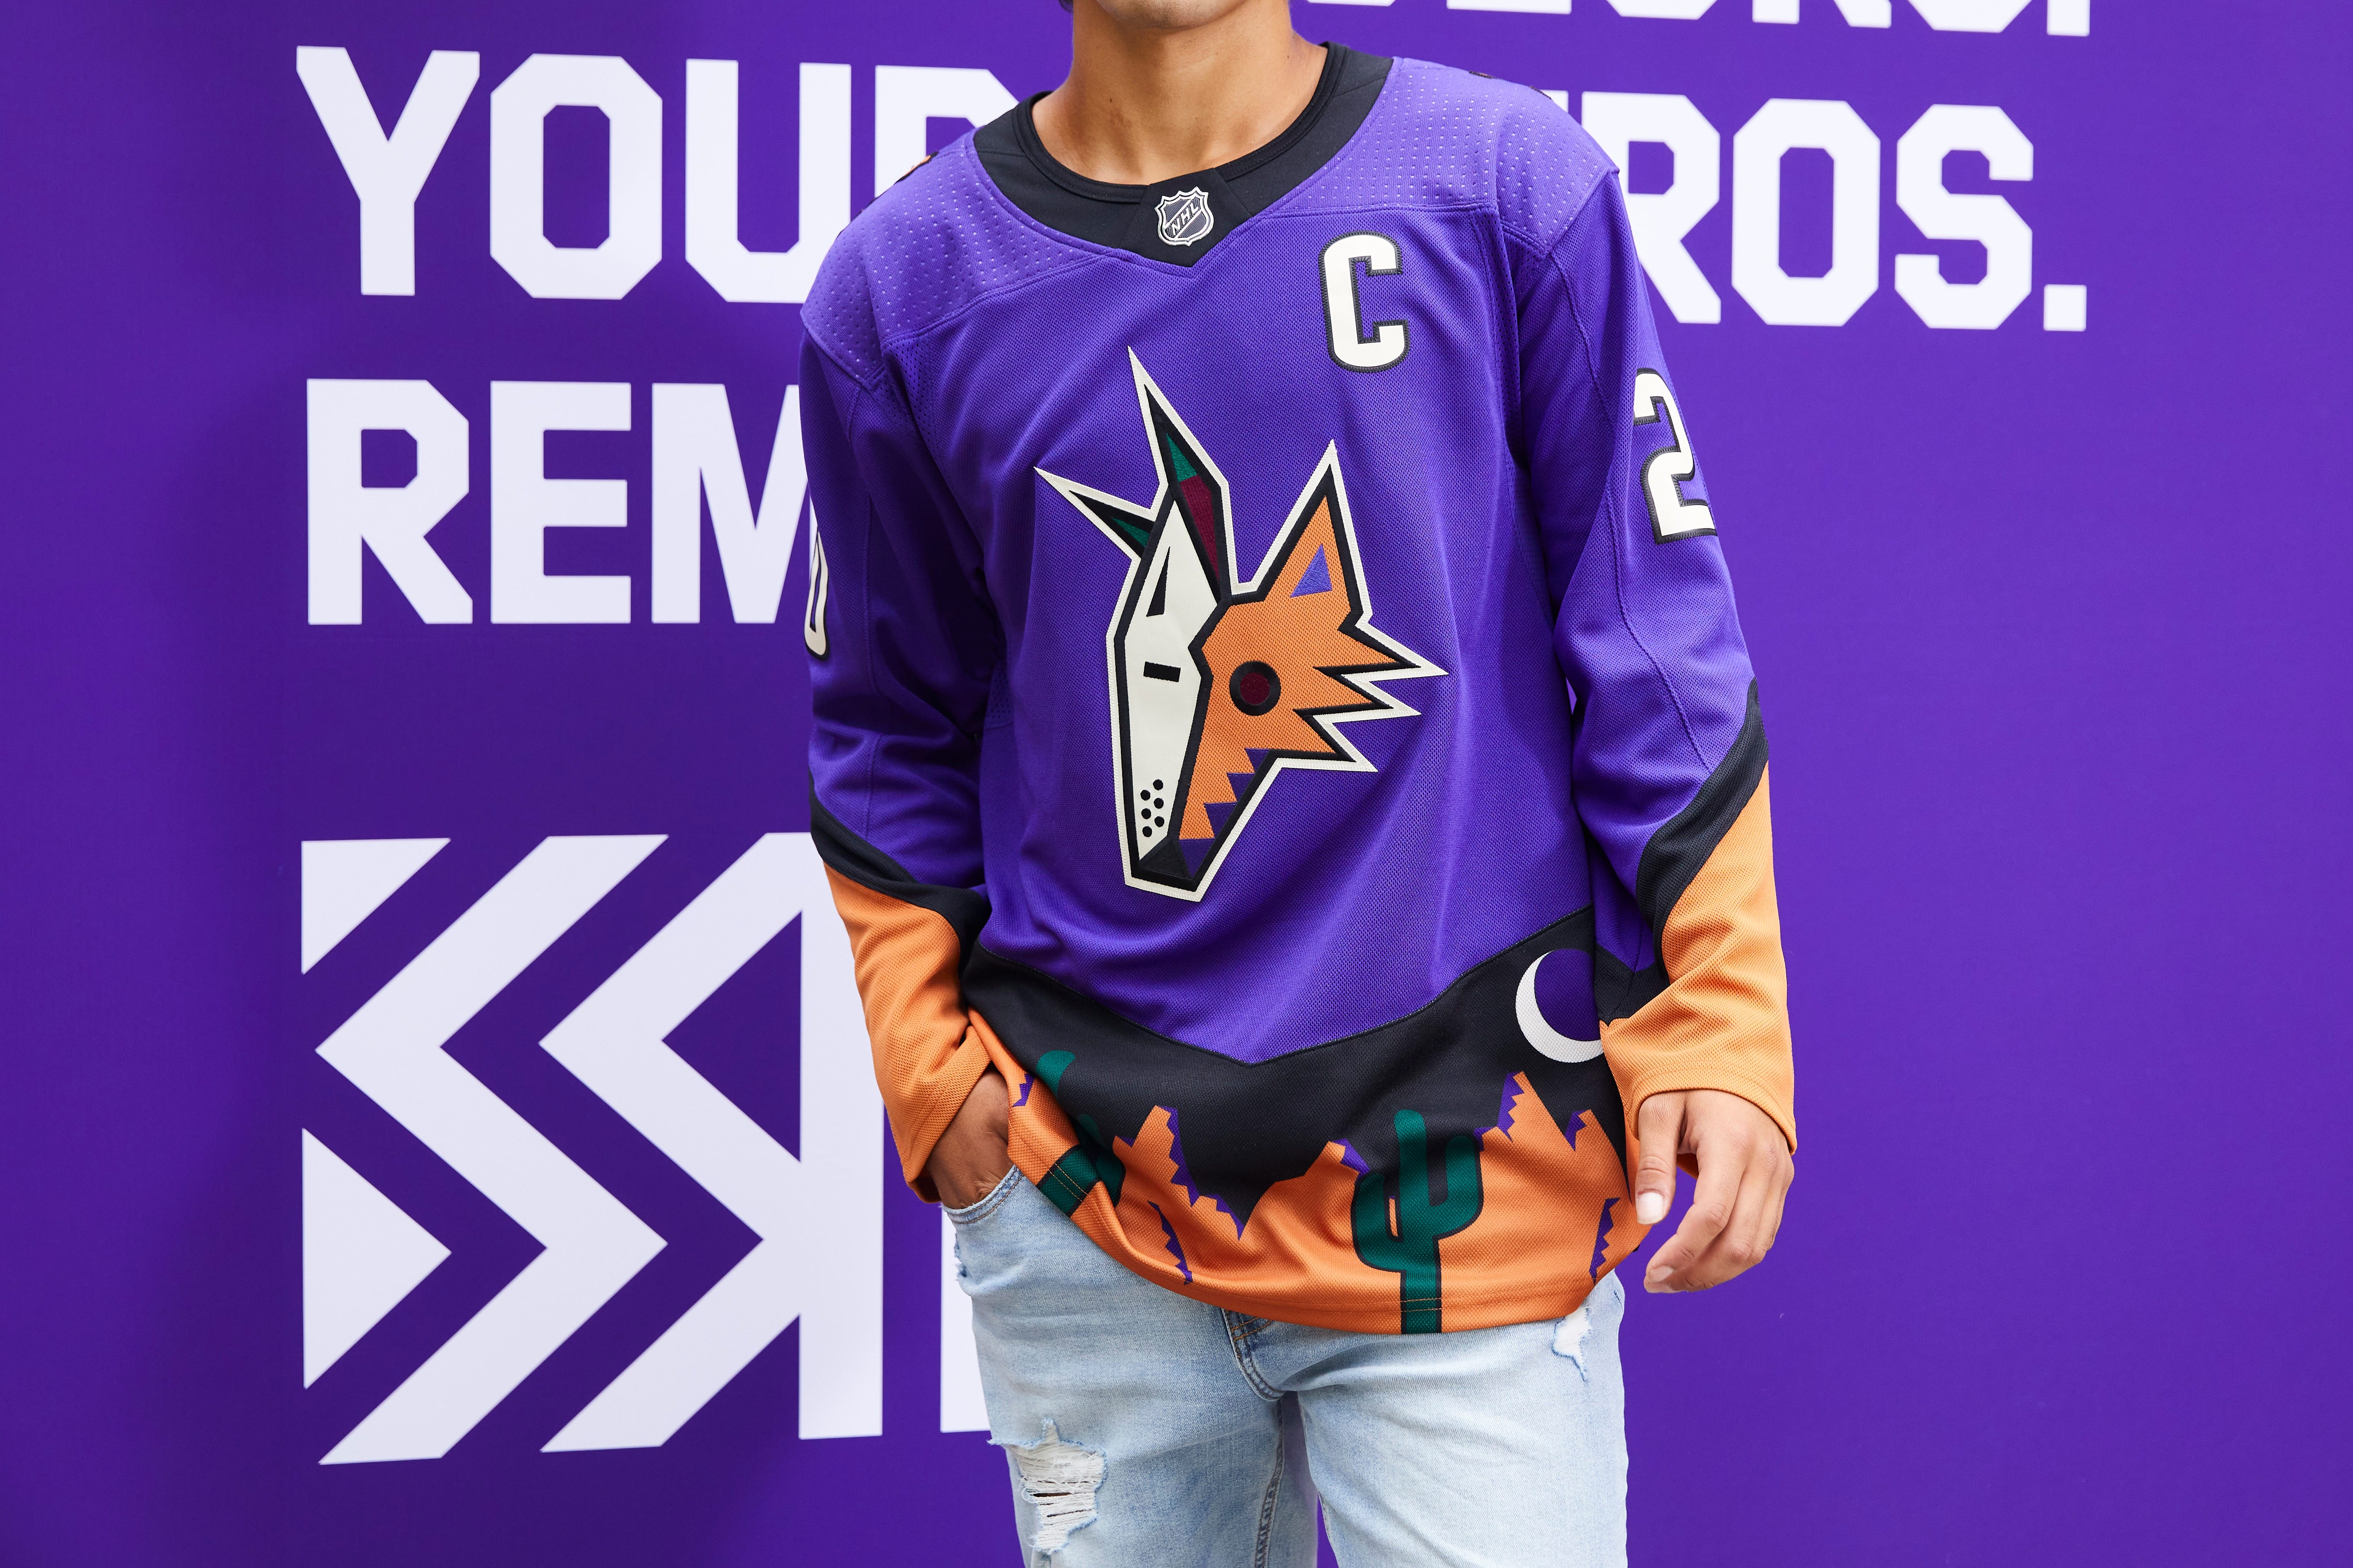 Arizona Coyotes to wear purple alternate jerseys for select games